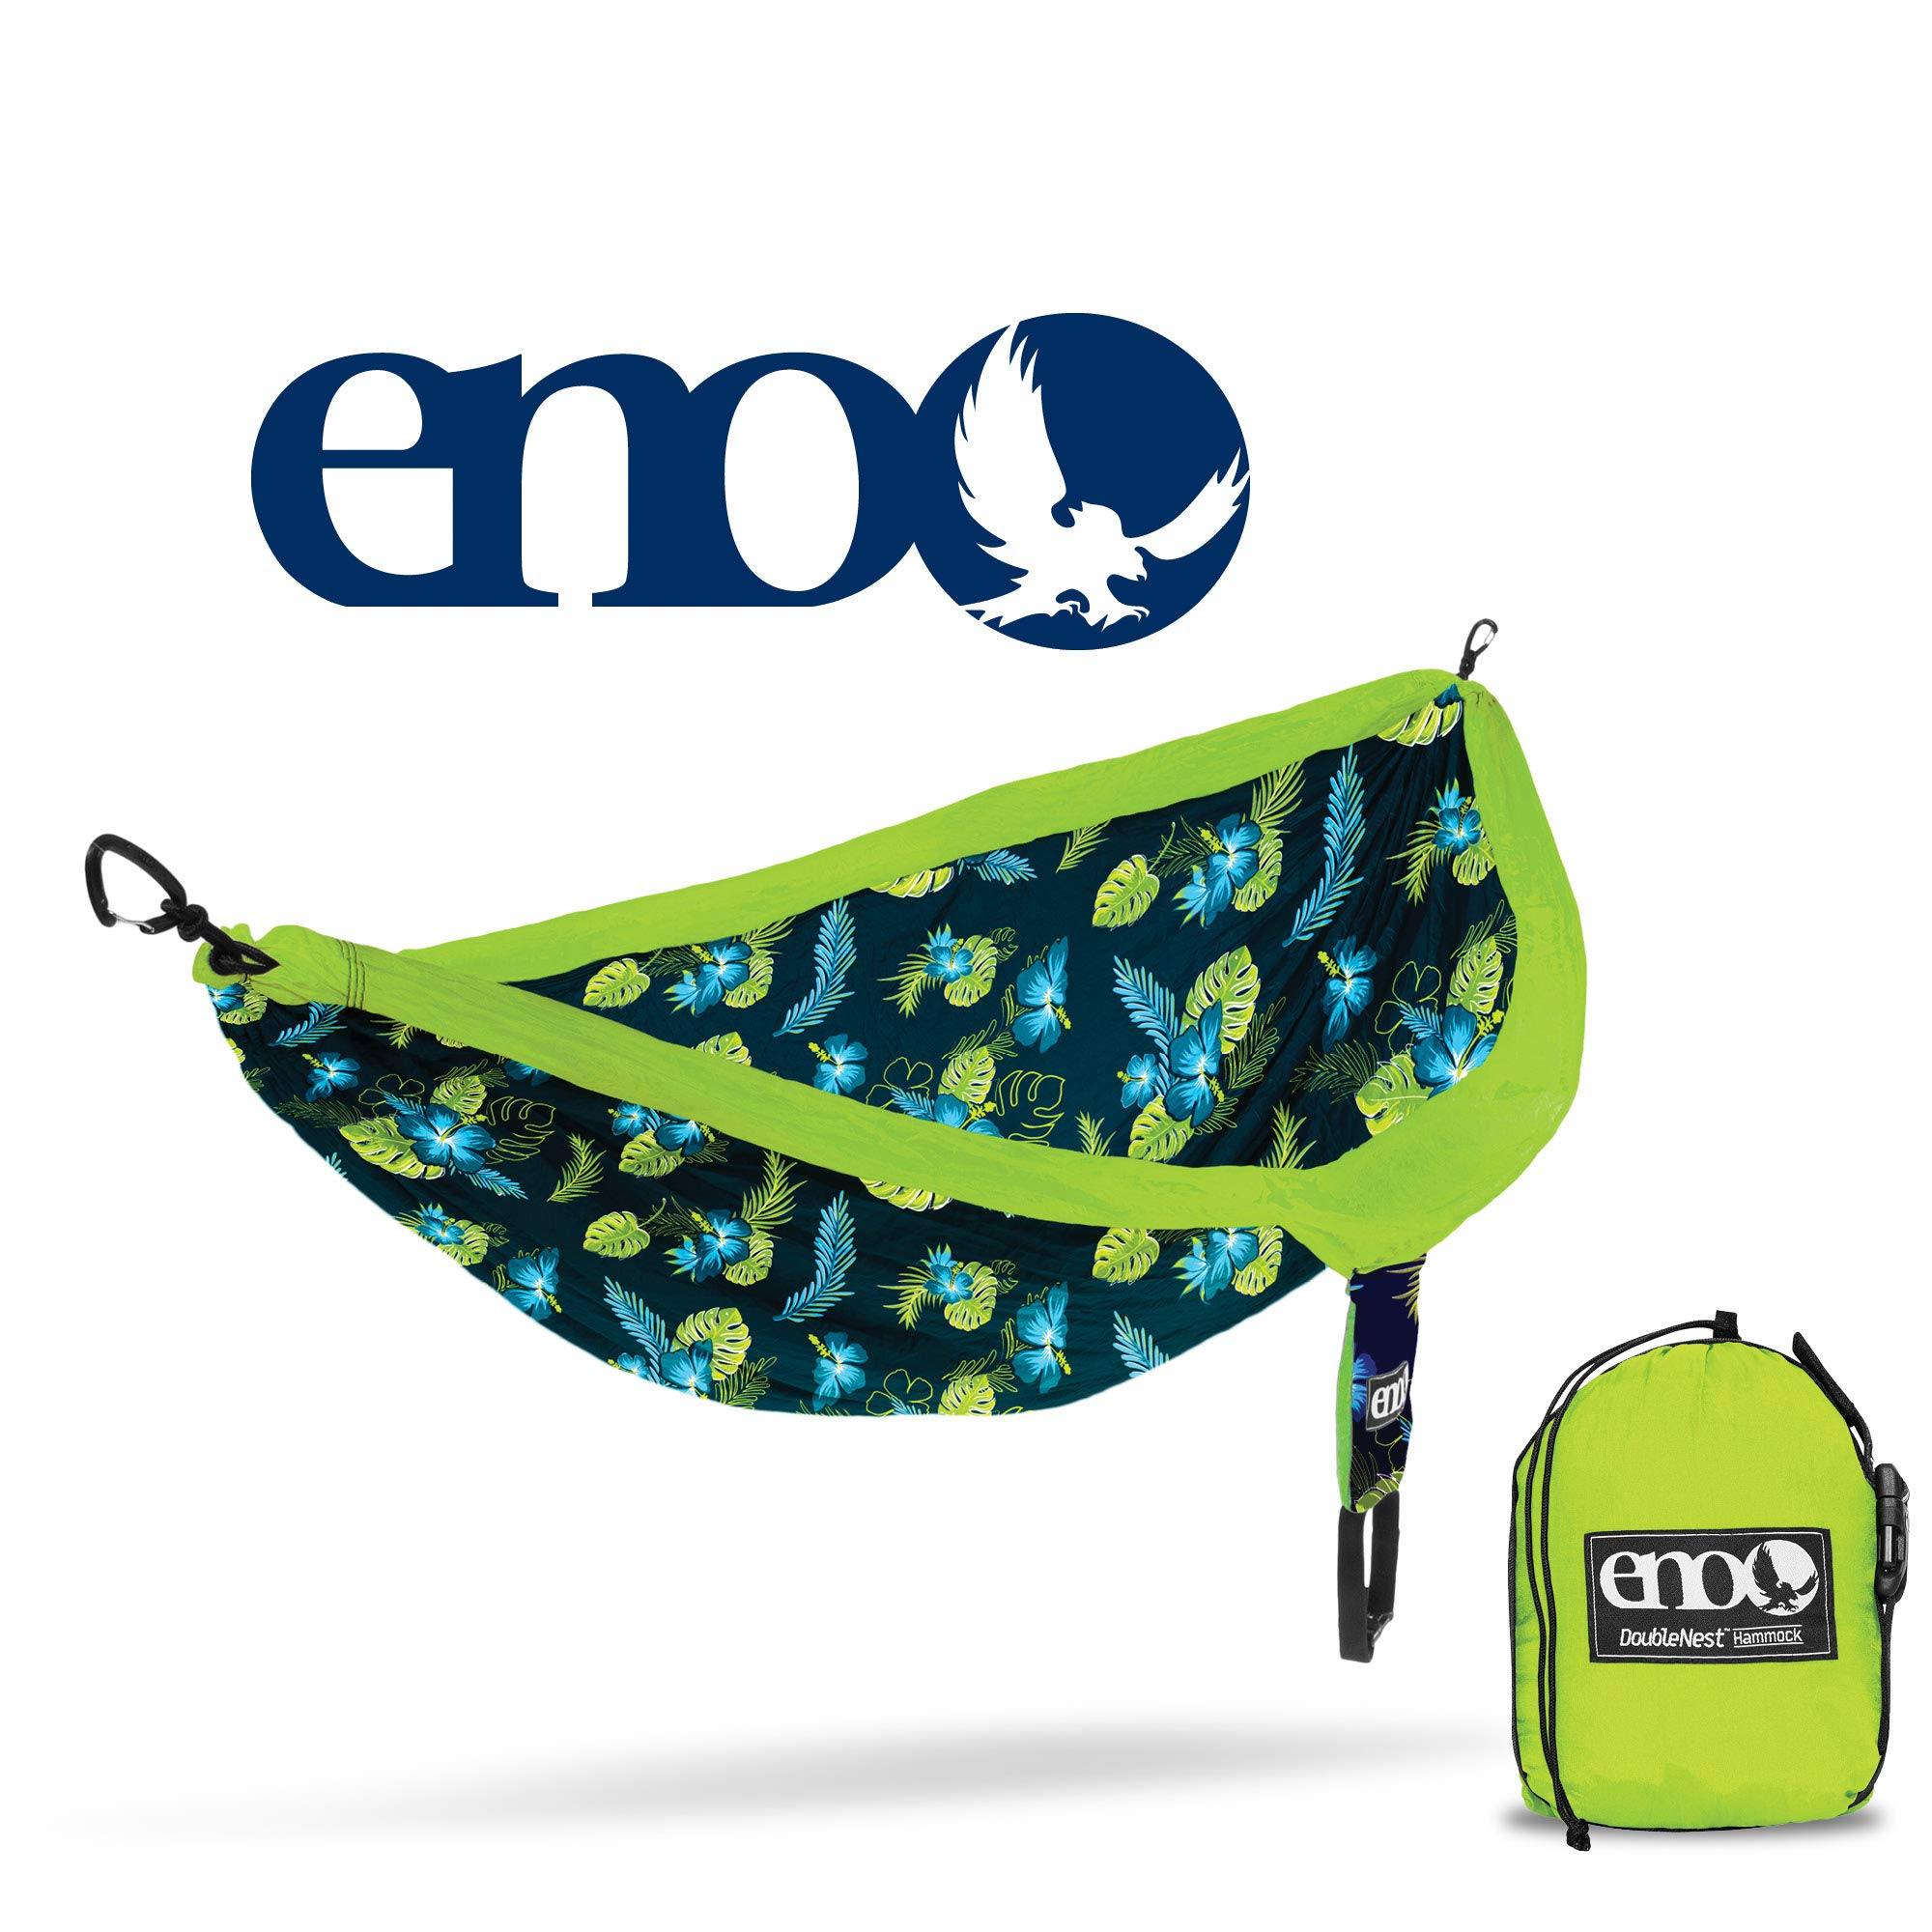 ENO - Eagles Nest Outfitters DoubleNest Print Portable Hammock for Two, Green Aloha